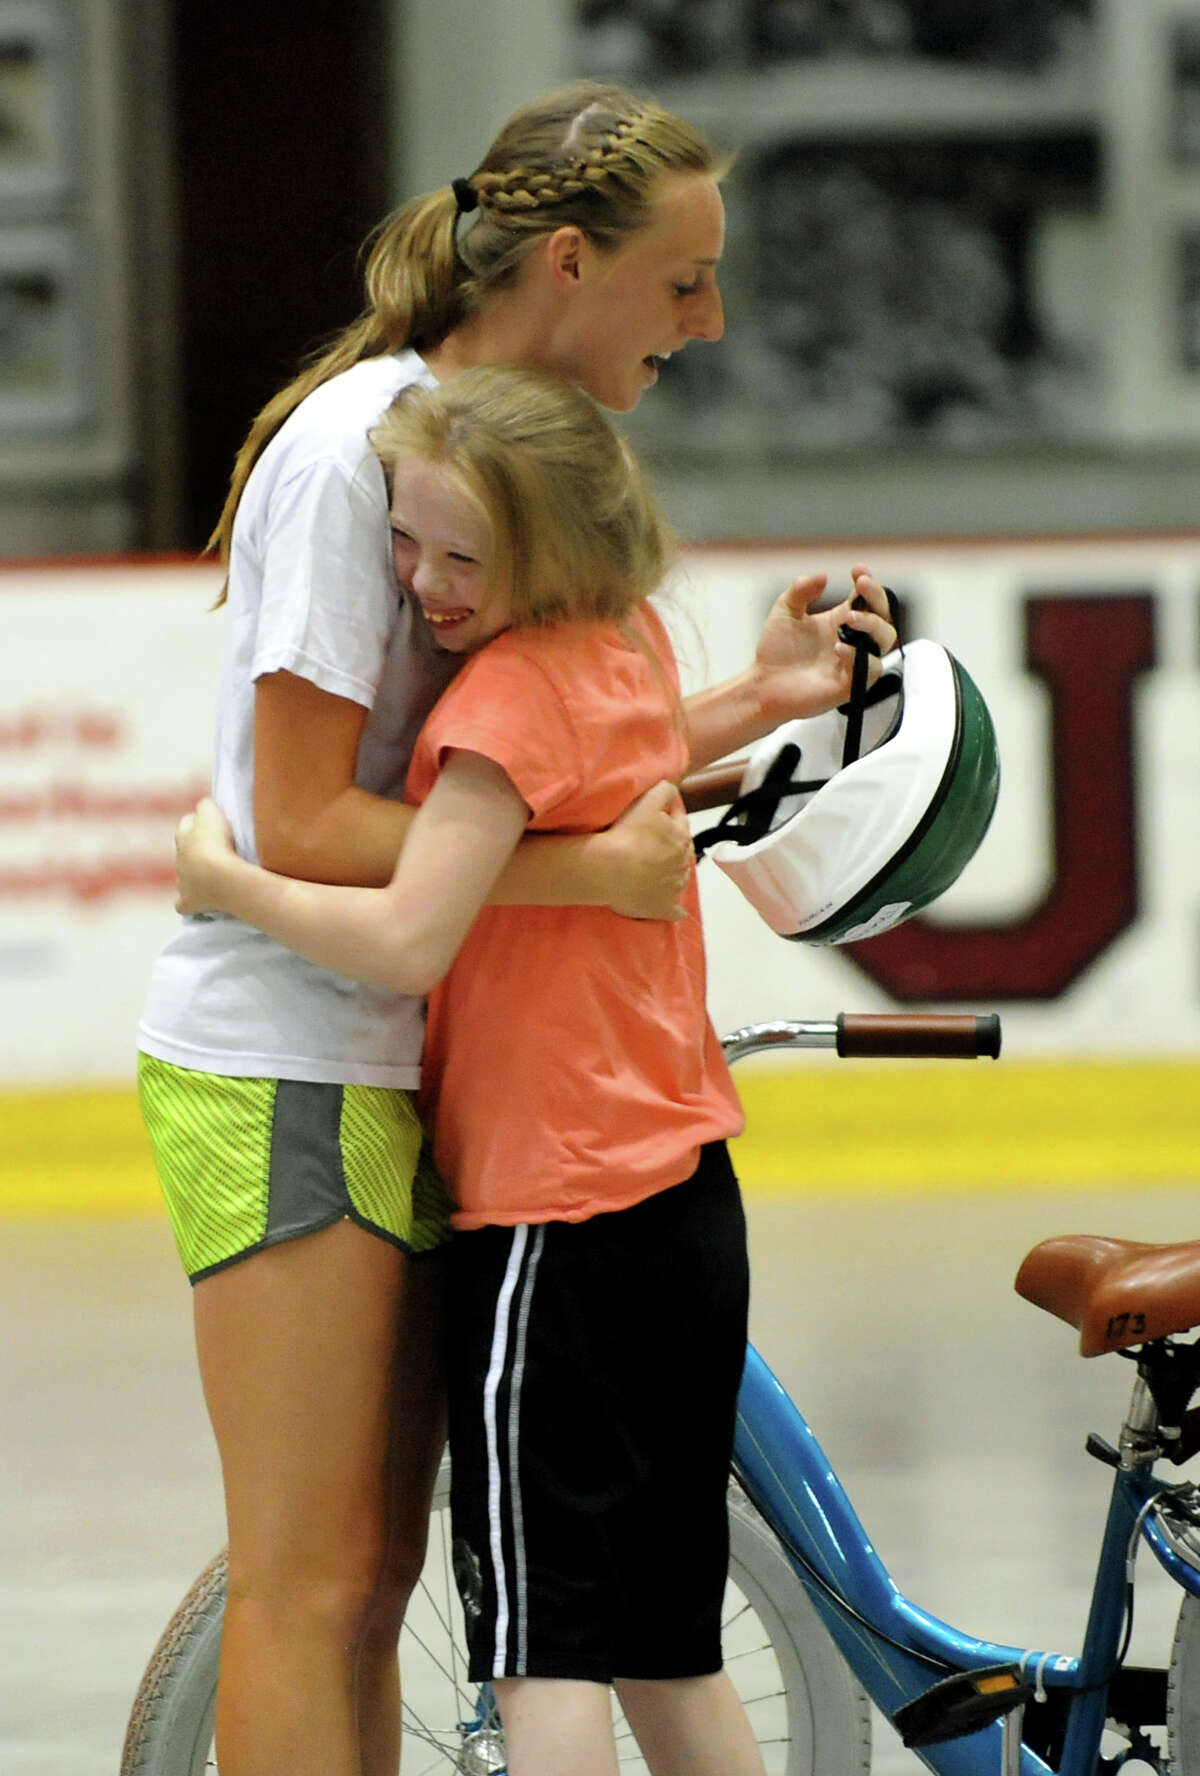 Theresa Osborne, 14, of Schenectady, right, hugs volunteer Megan McGillycuddy, 17, during a bicycle-riding camp on Thursday, June 28, 2012, at Union College in Schenectady, N.Y. Loose the Training Wheels puts on the weeklong camp to teach children with disabilities how to bike ride. STRIDE Adaptive Sports sponsors the event. (Cindy Schultz / Times Union)